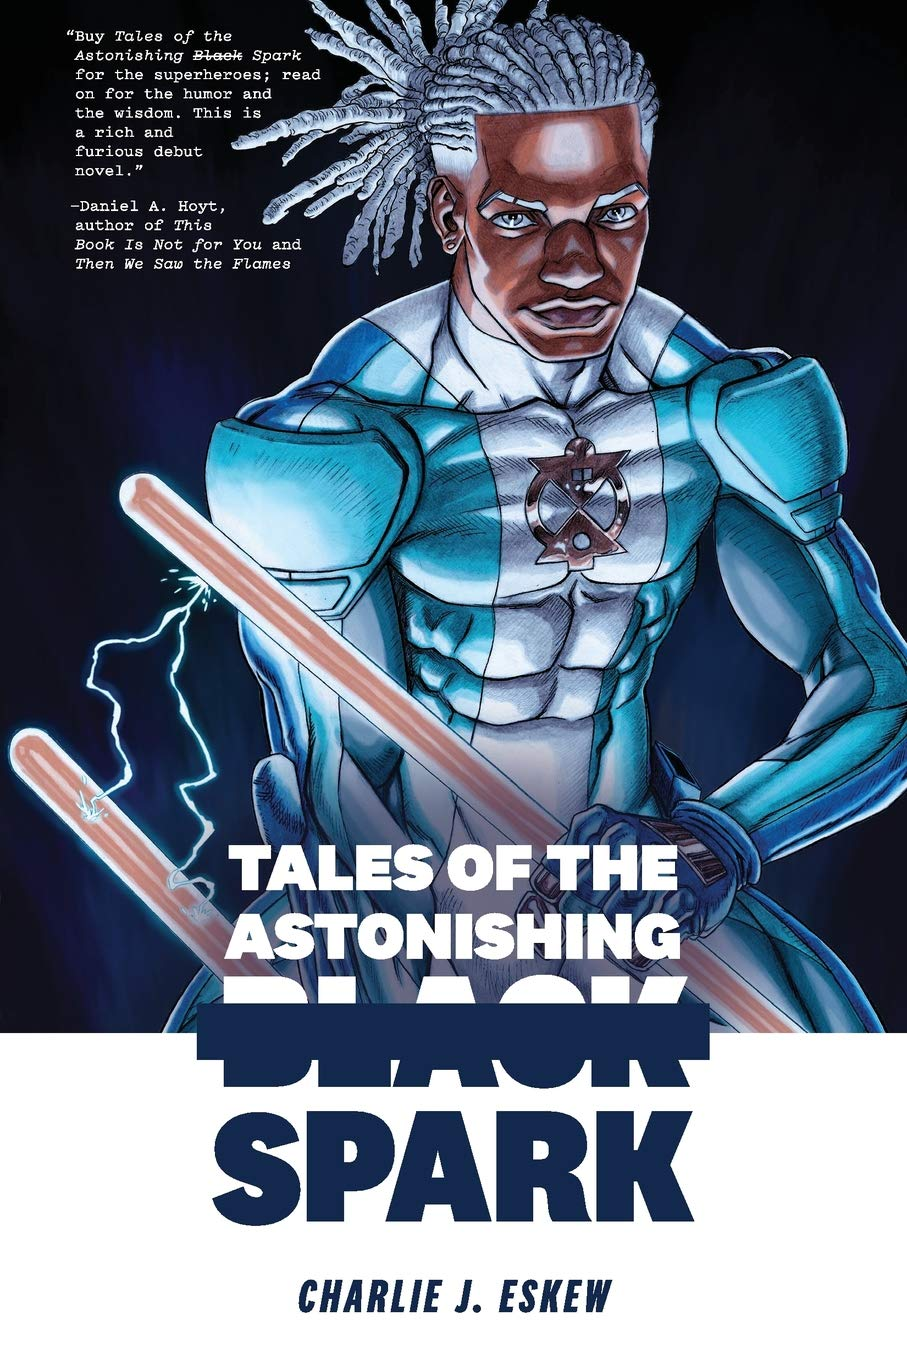 Tales of the Astonishing Black Spark: Charlie J Eskew: 9781941360163 ...